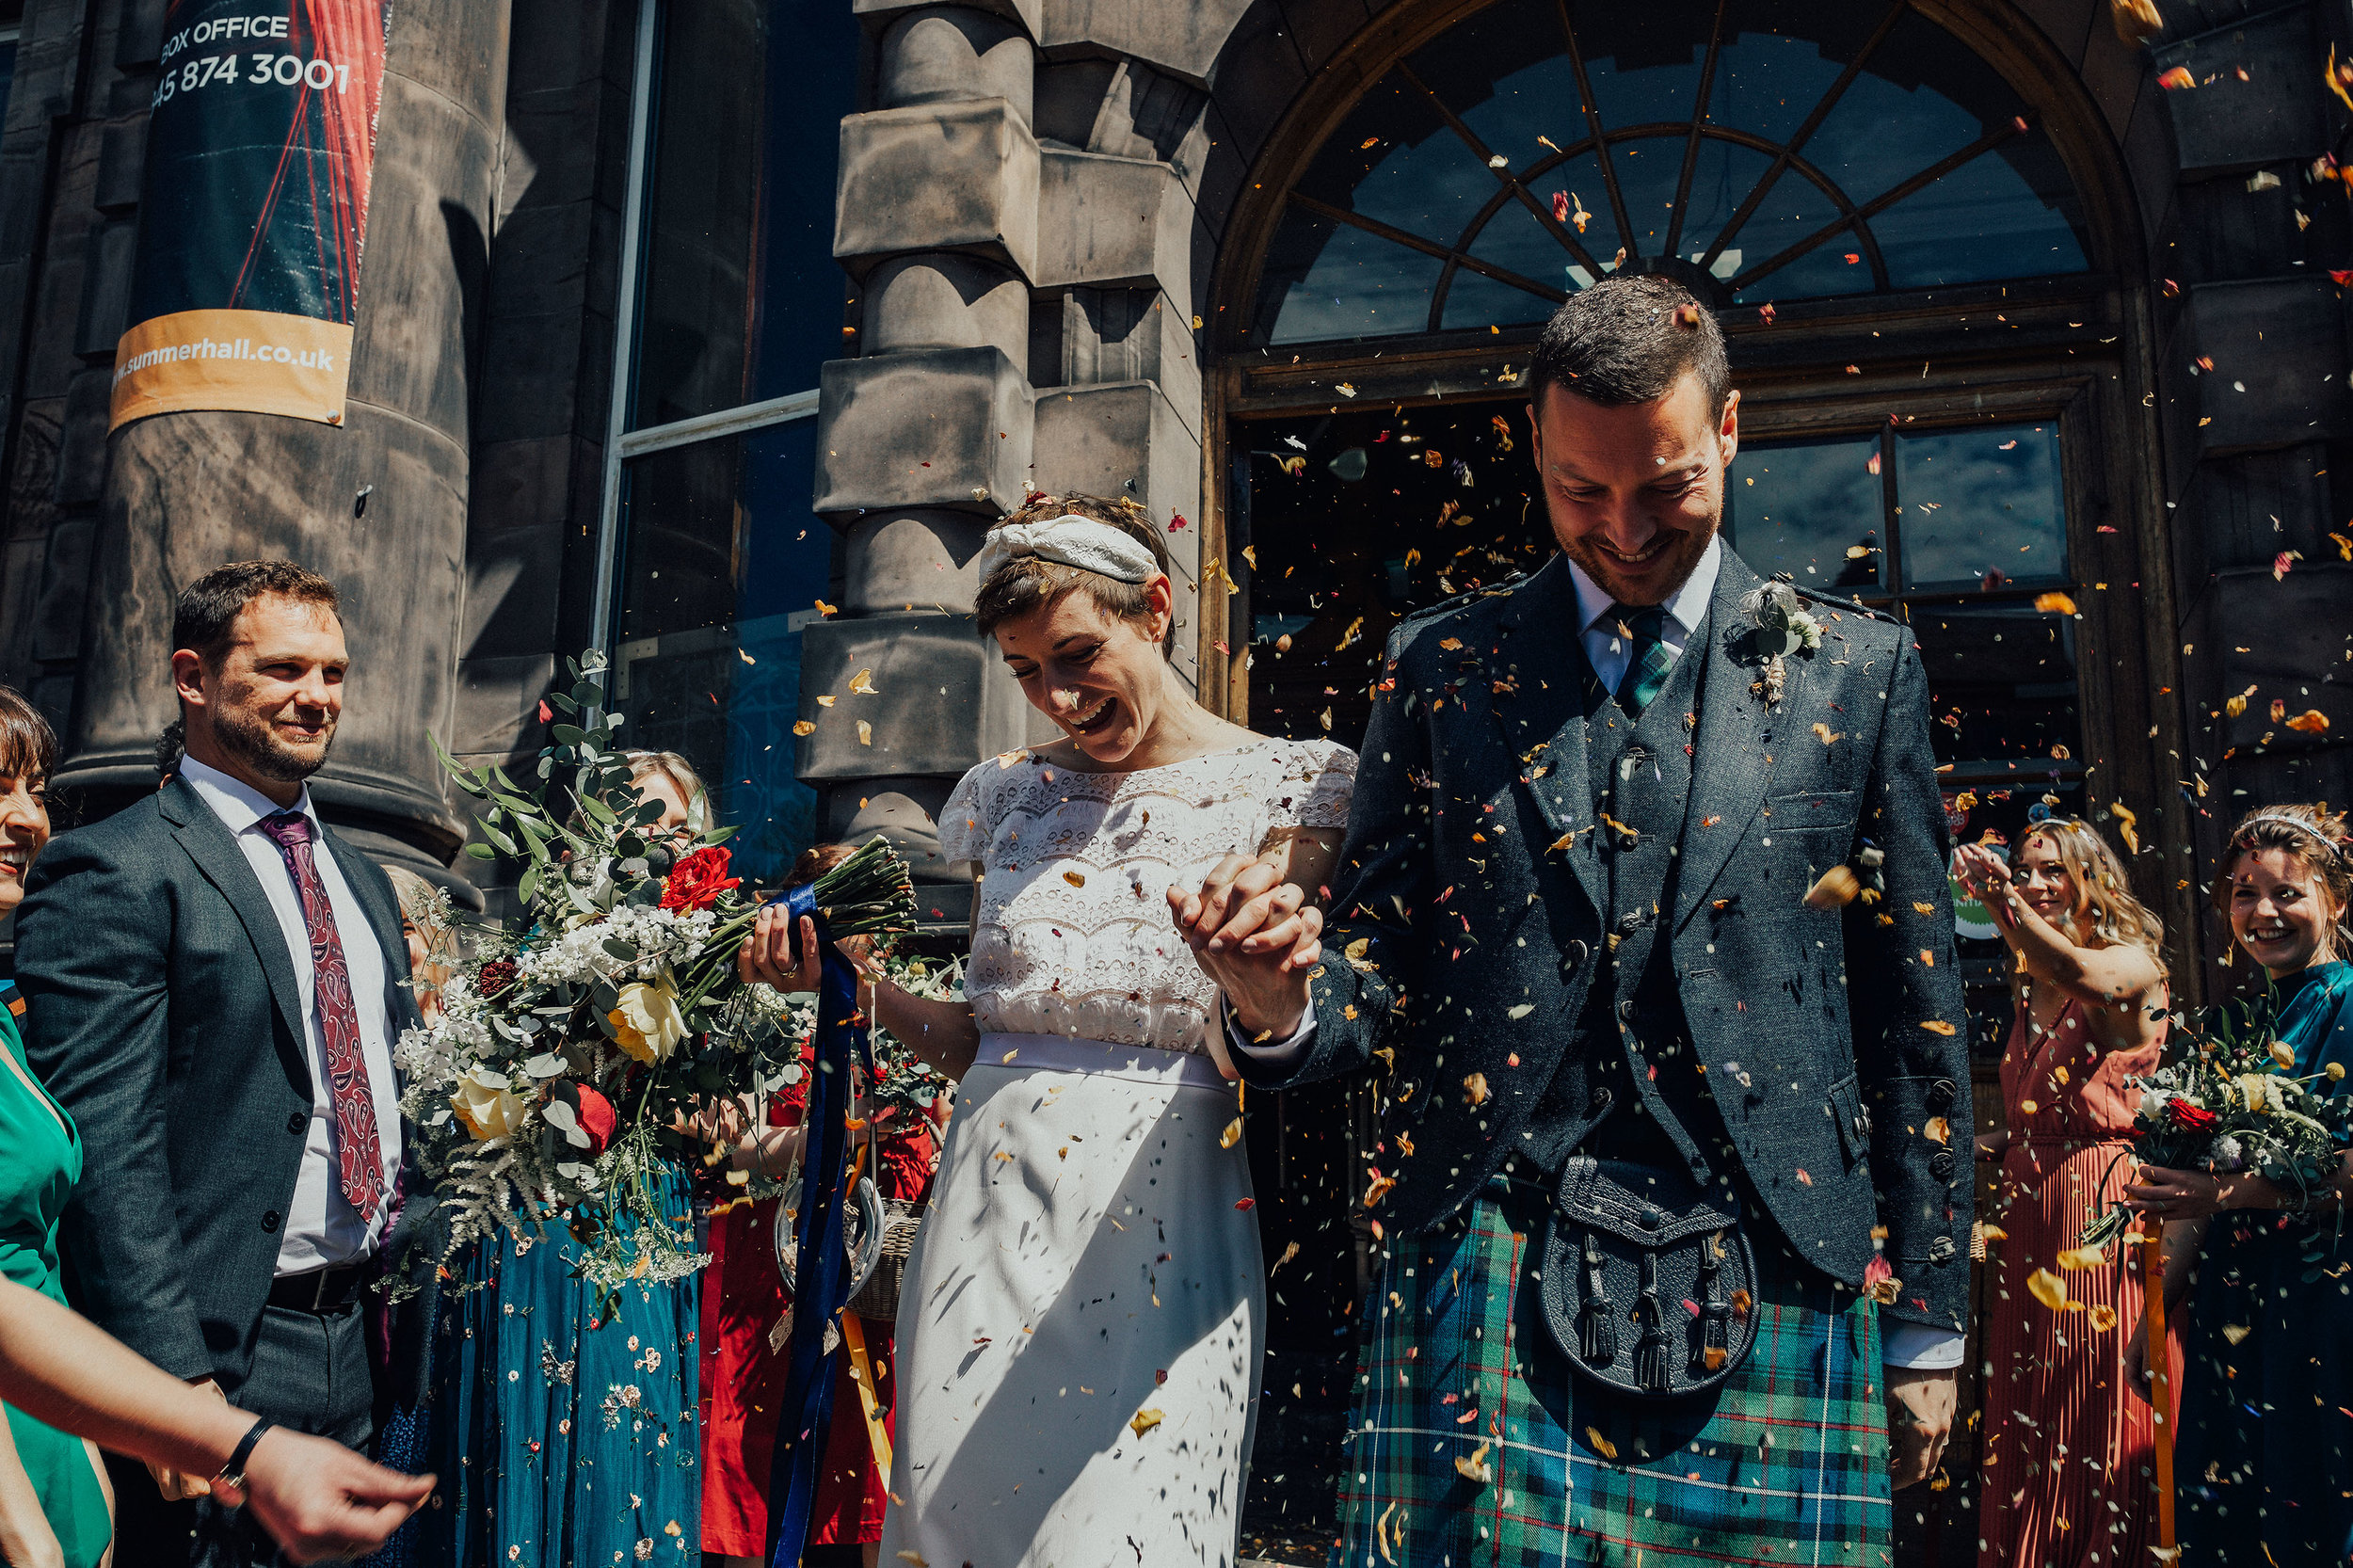 TIMBERYARD_EDINBURGH_WEDDING_PJ_PHILLIPS_PHOTOGRAPHY_106.jpg